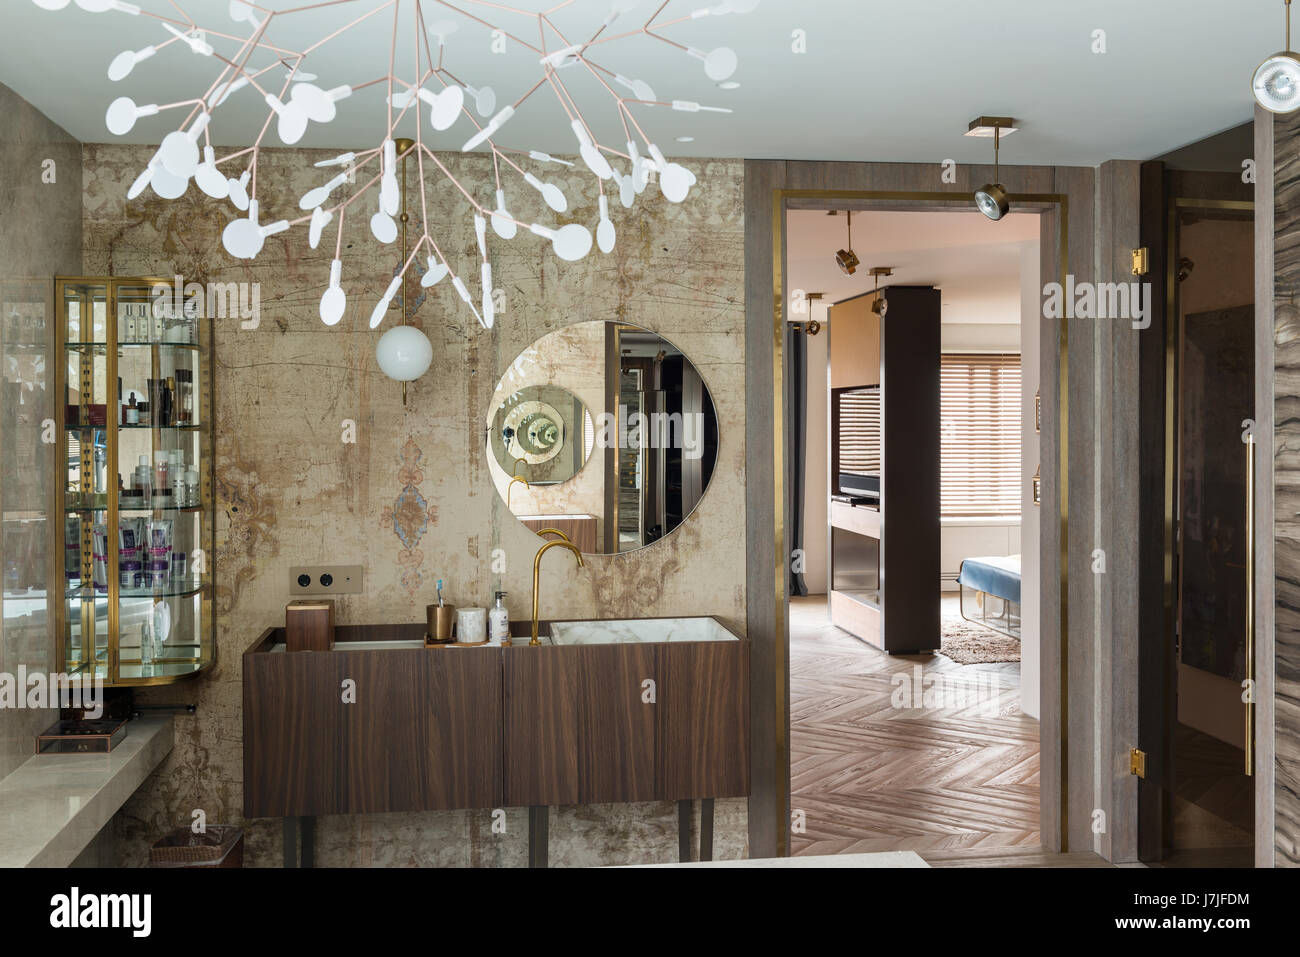 Circular mirror above washbasin with elaborate sculpture - Stock Image